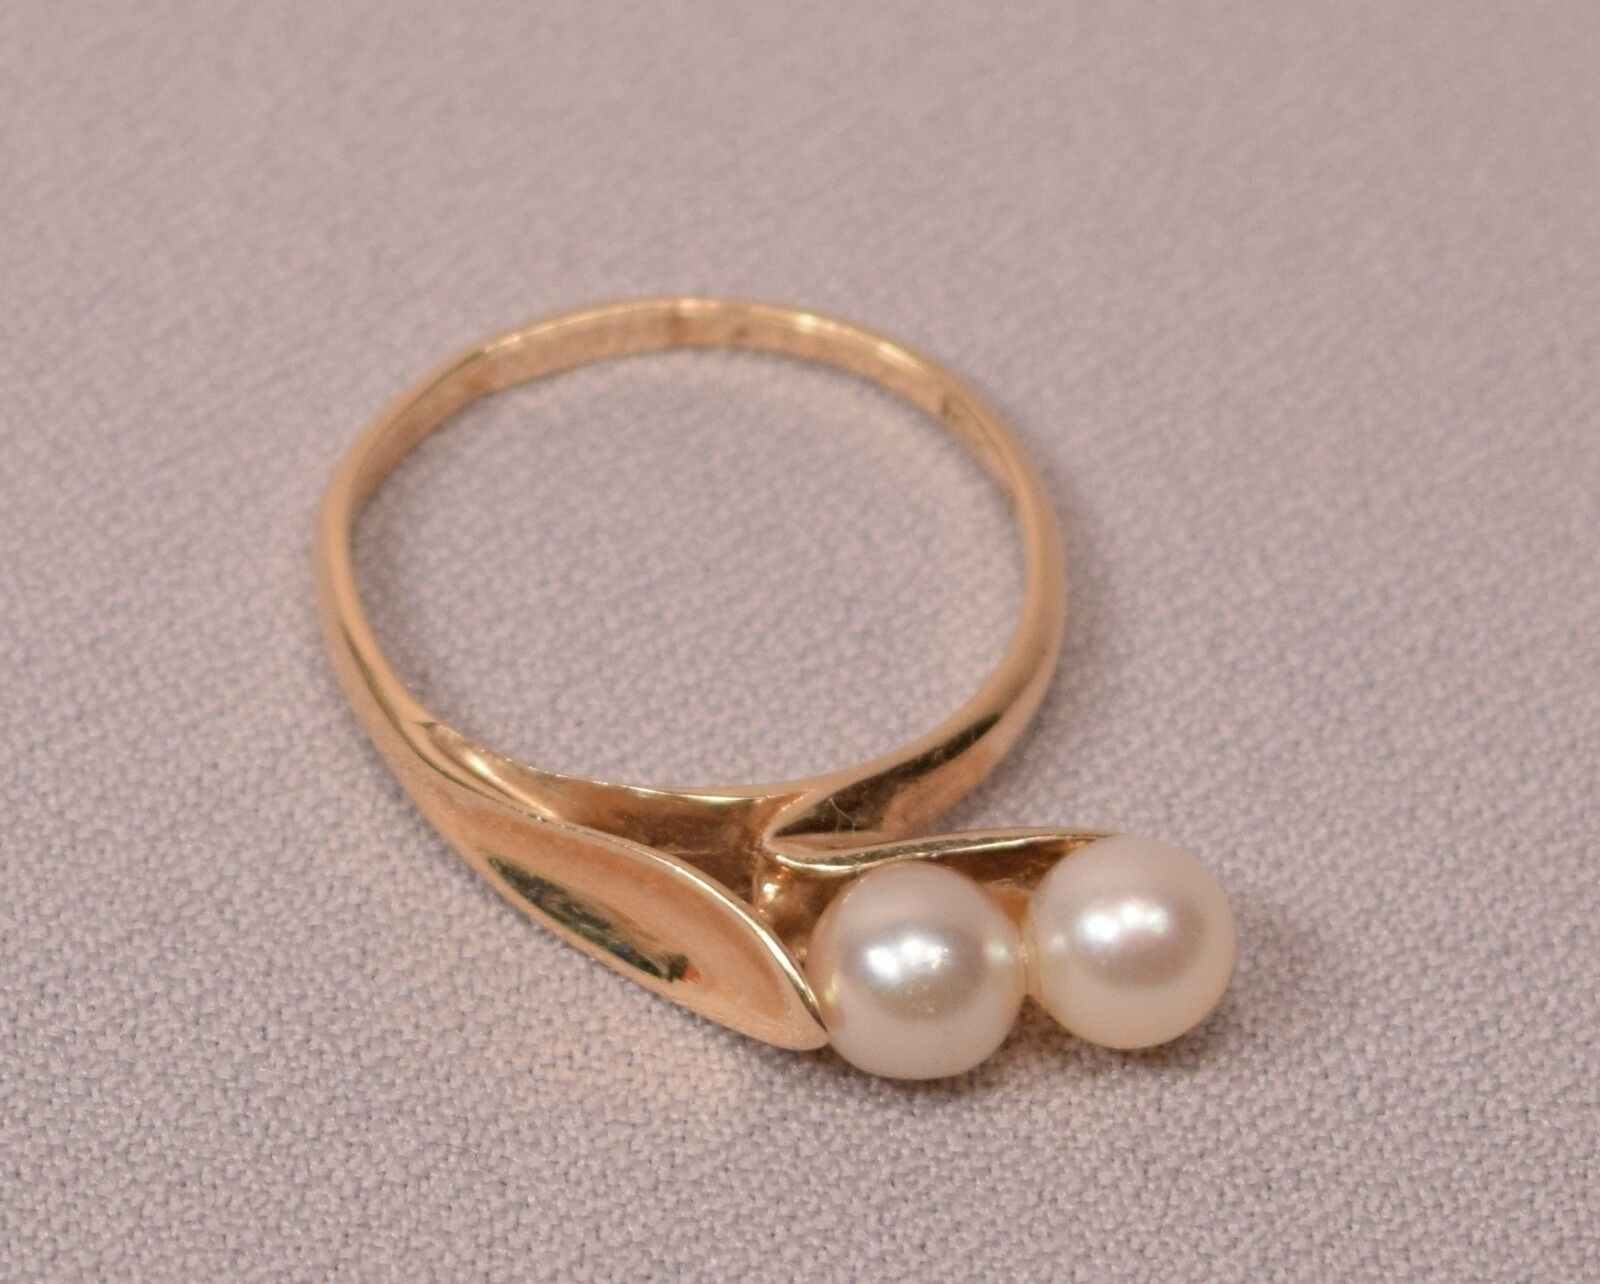 marked 14k gold with makers marks gold ring with two